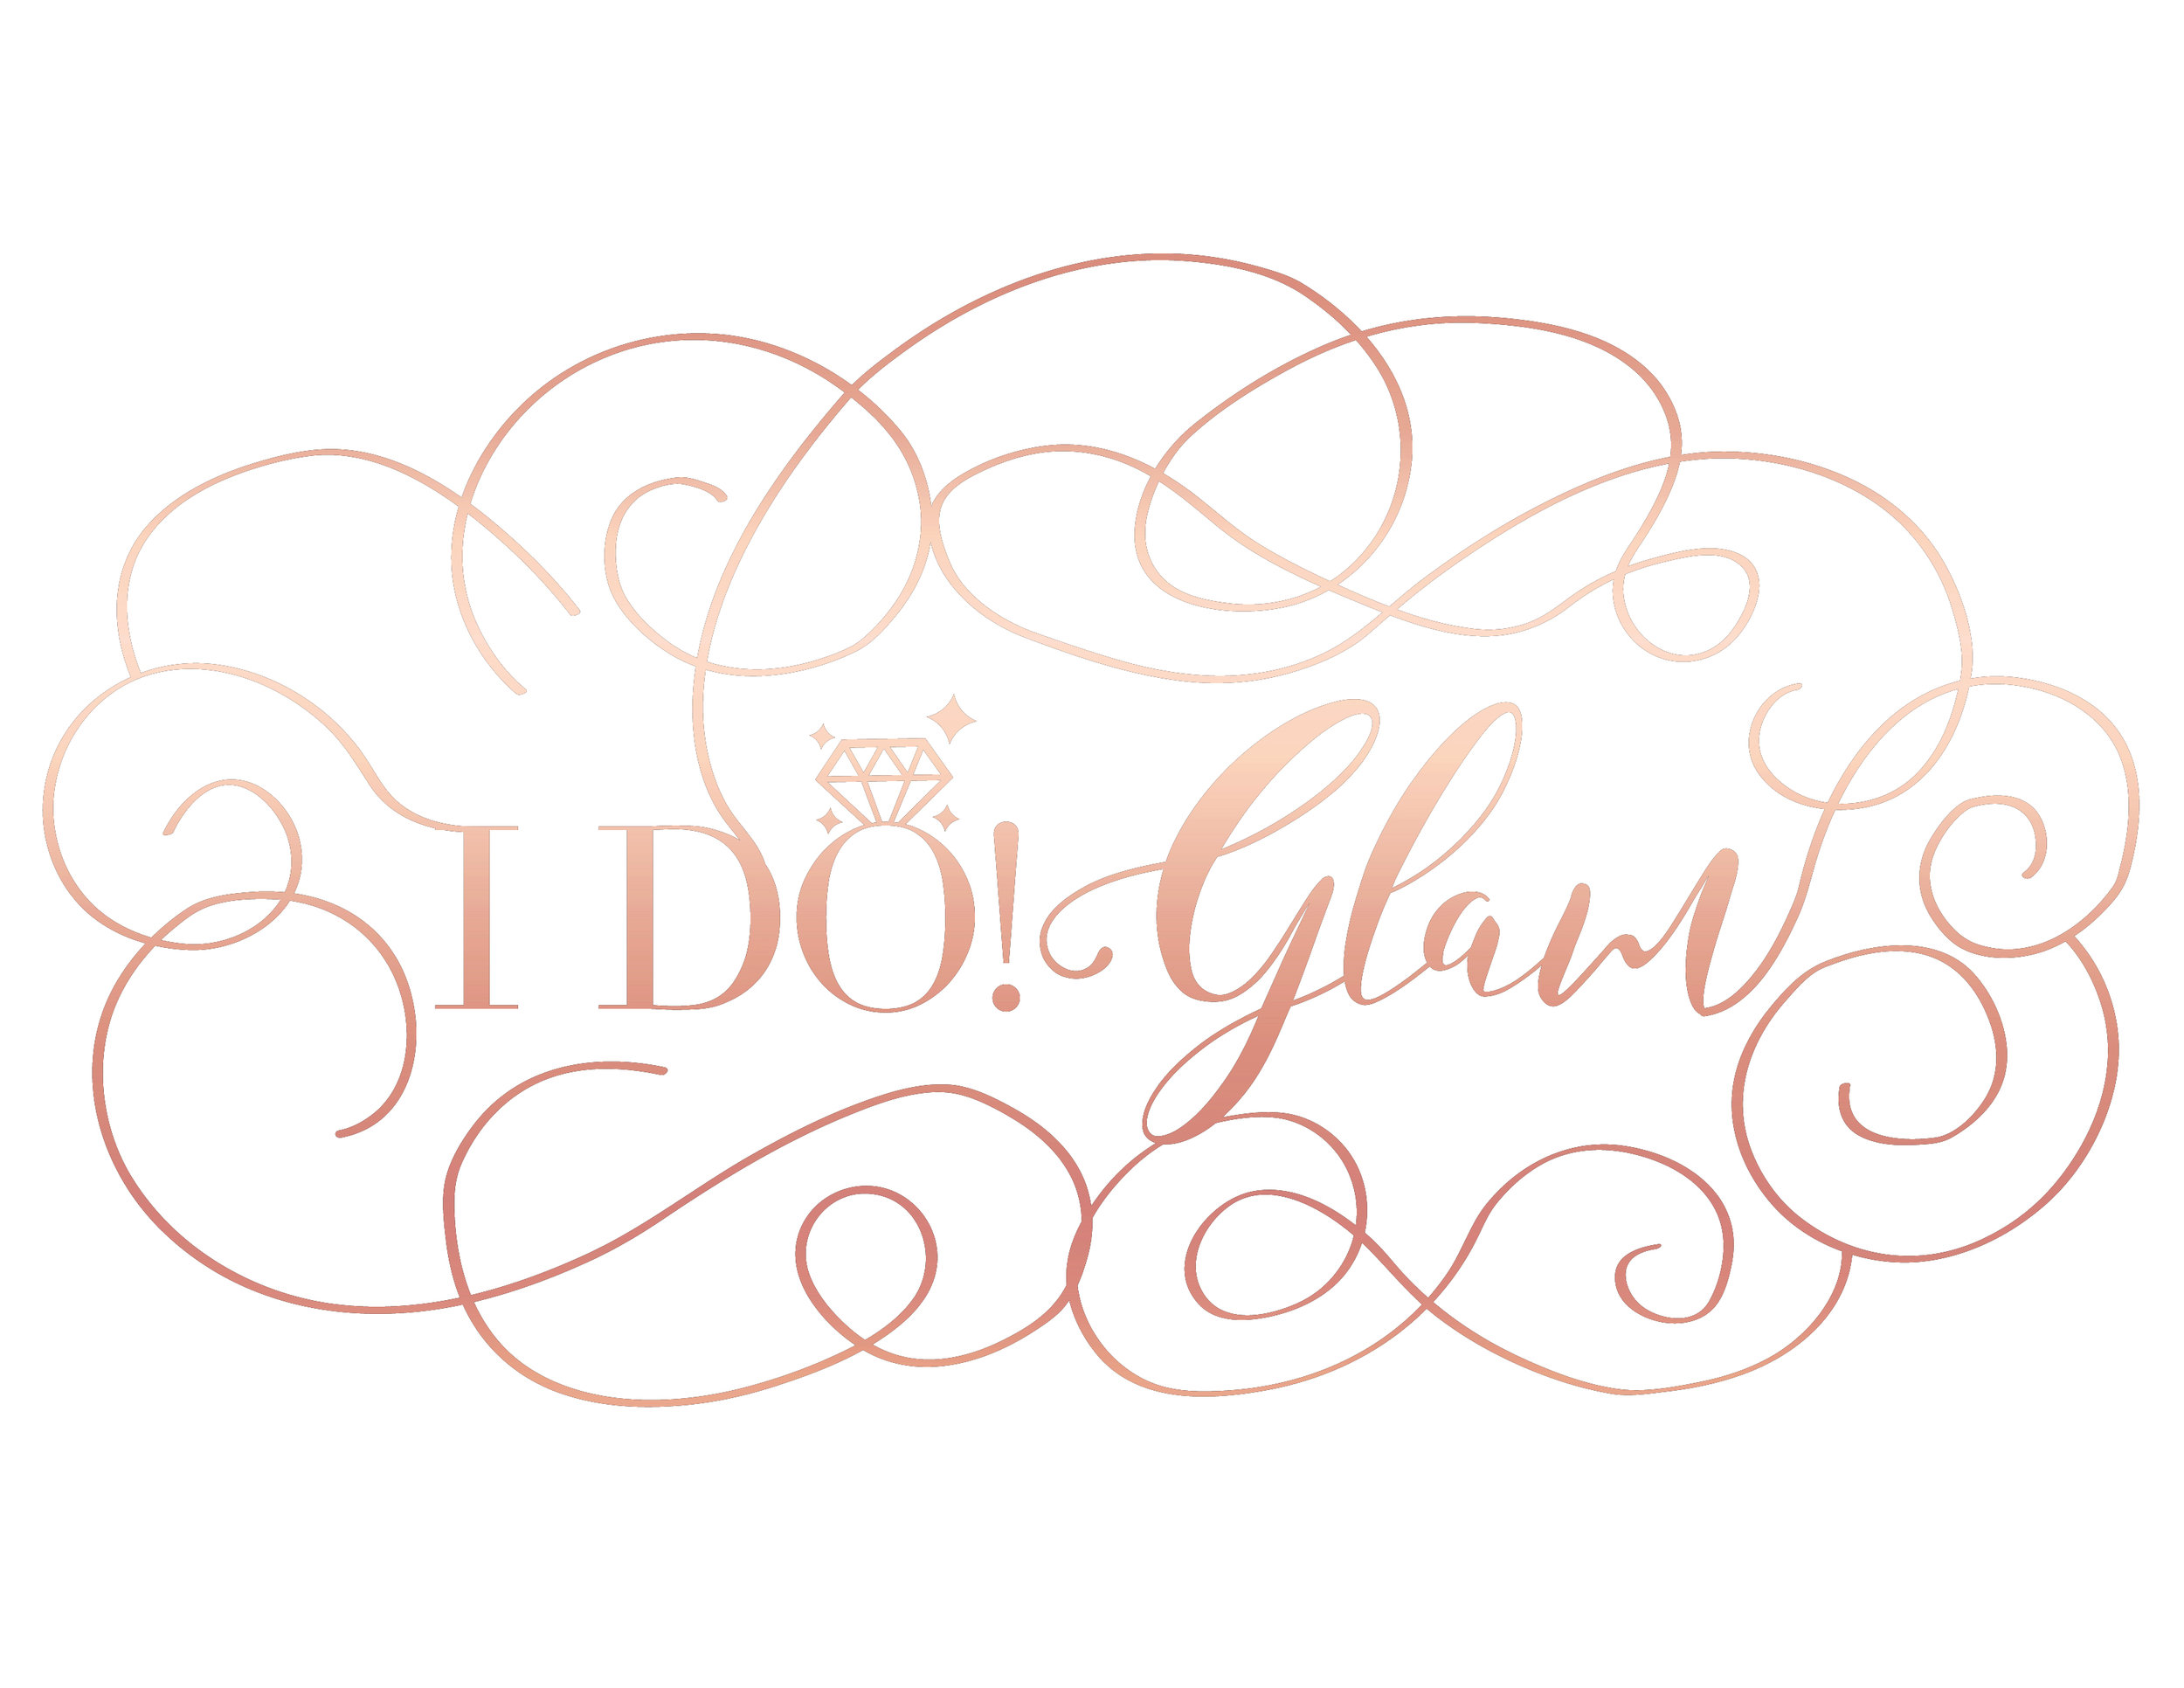 I Do Glam - I Do Glam is a mobile beauty team that will be doing Bridal Beauty Trials on Tuesdays and Thursdays here at Max Bridal. They strive to make you and your bridal party look gorgeous and feel forgeous. This personalized service is provided at a low $100 fee. Call us now at 516.747.1888 or book online!